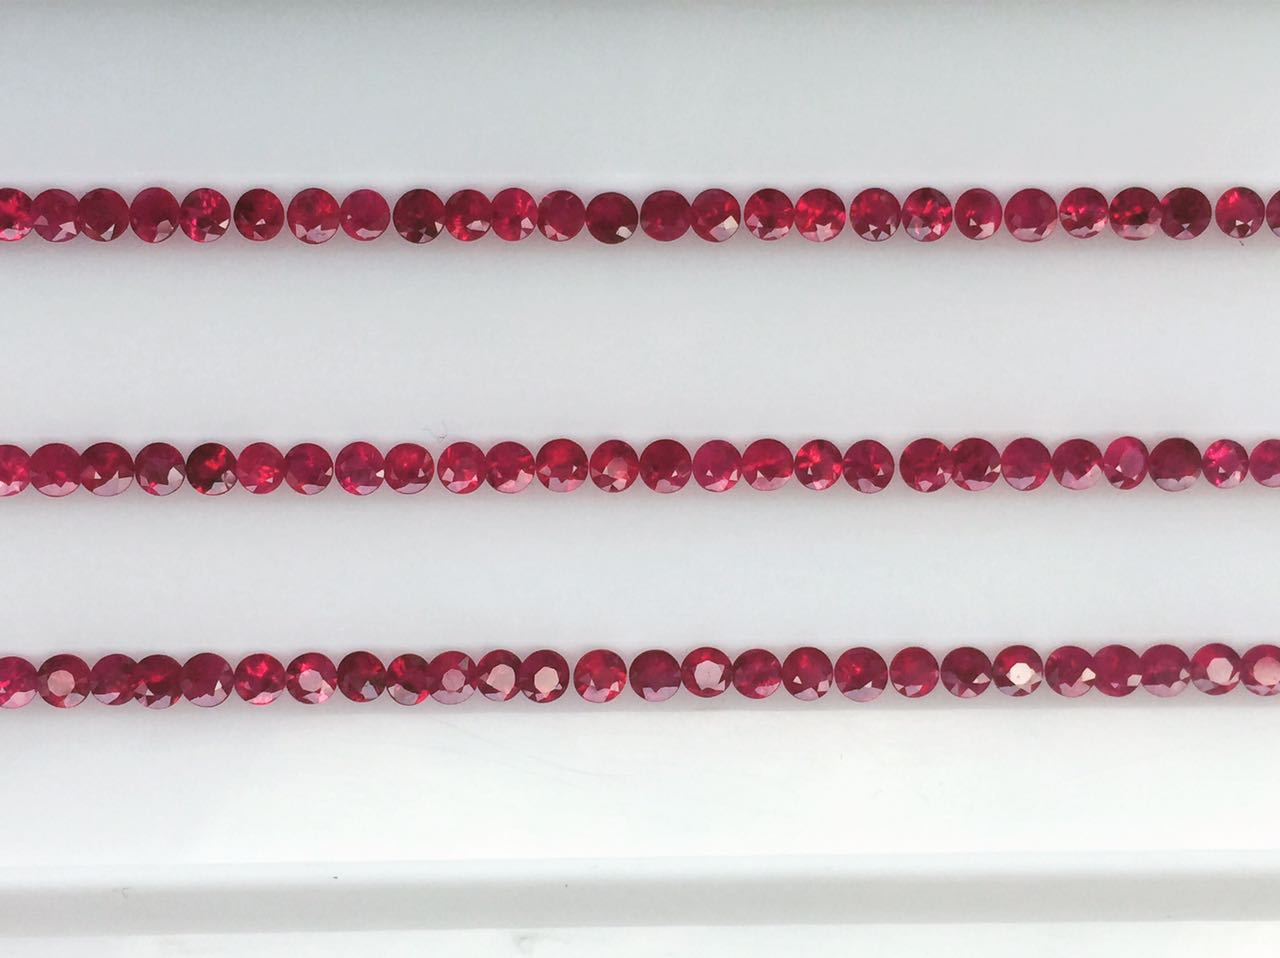 Rubies in Stock